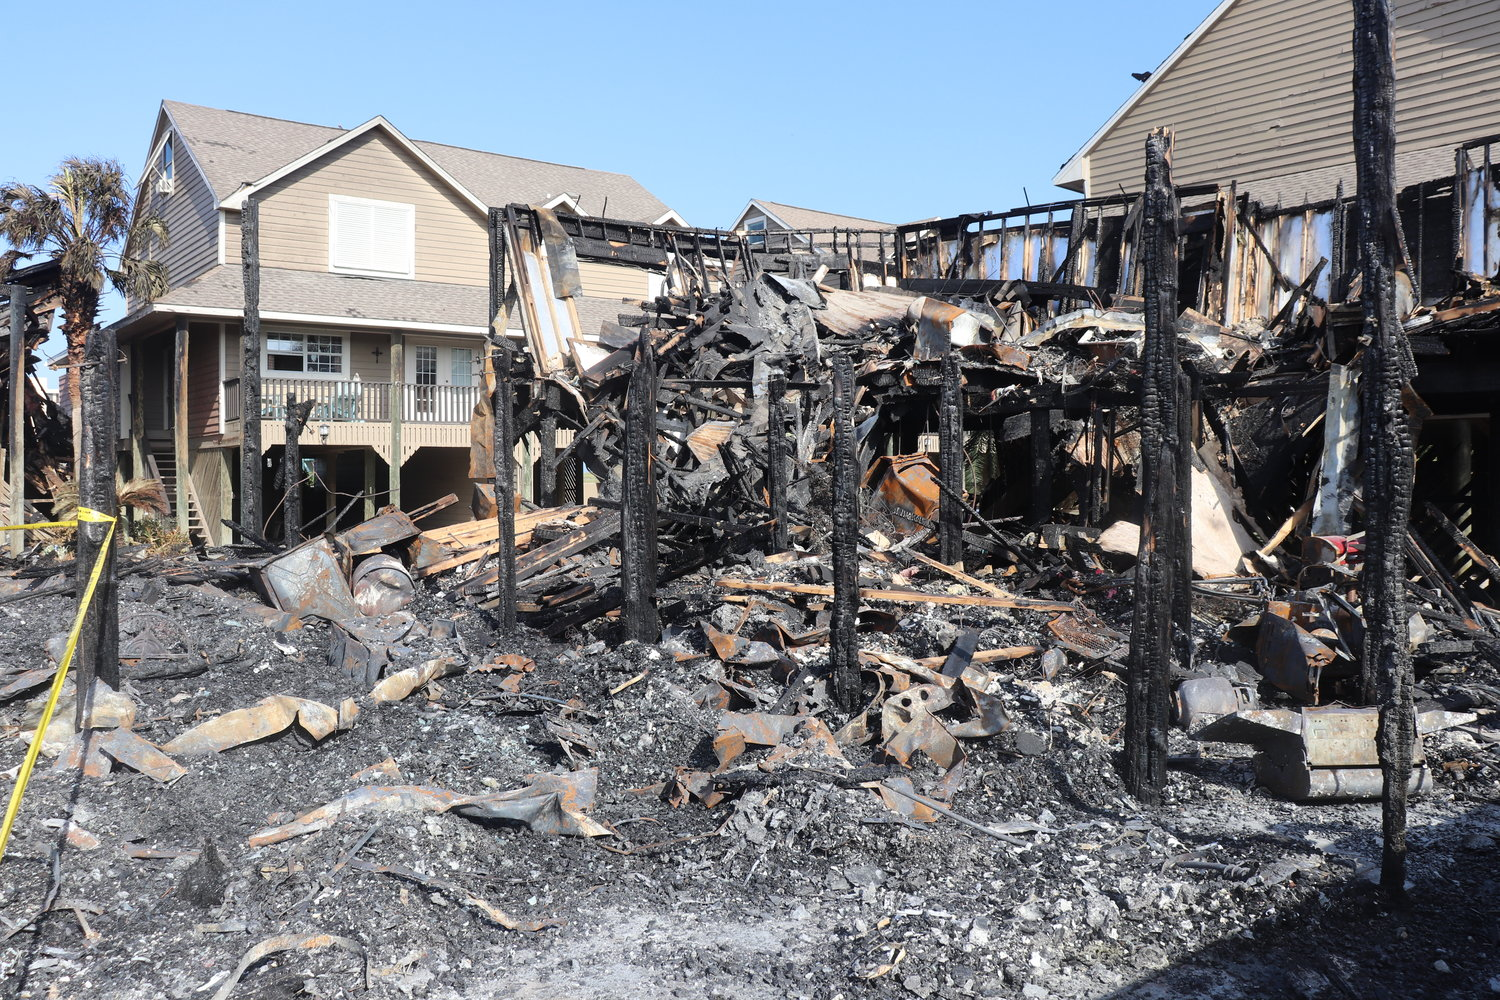 Flames engulfed 14 condominium units at Key Harbour and 12 units at Pescador Landing in the 17000 block of Perdido Key Drive on the Florida-Alabama line early Wednesday morning.